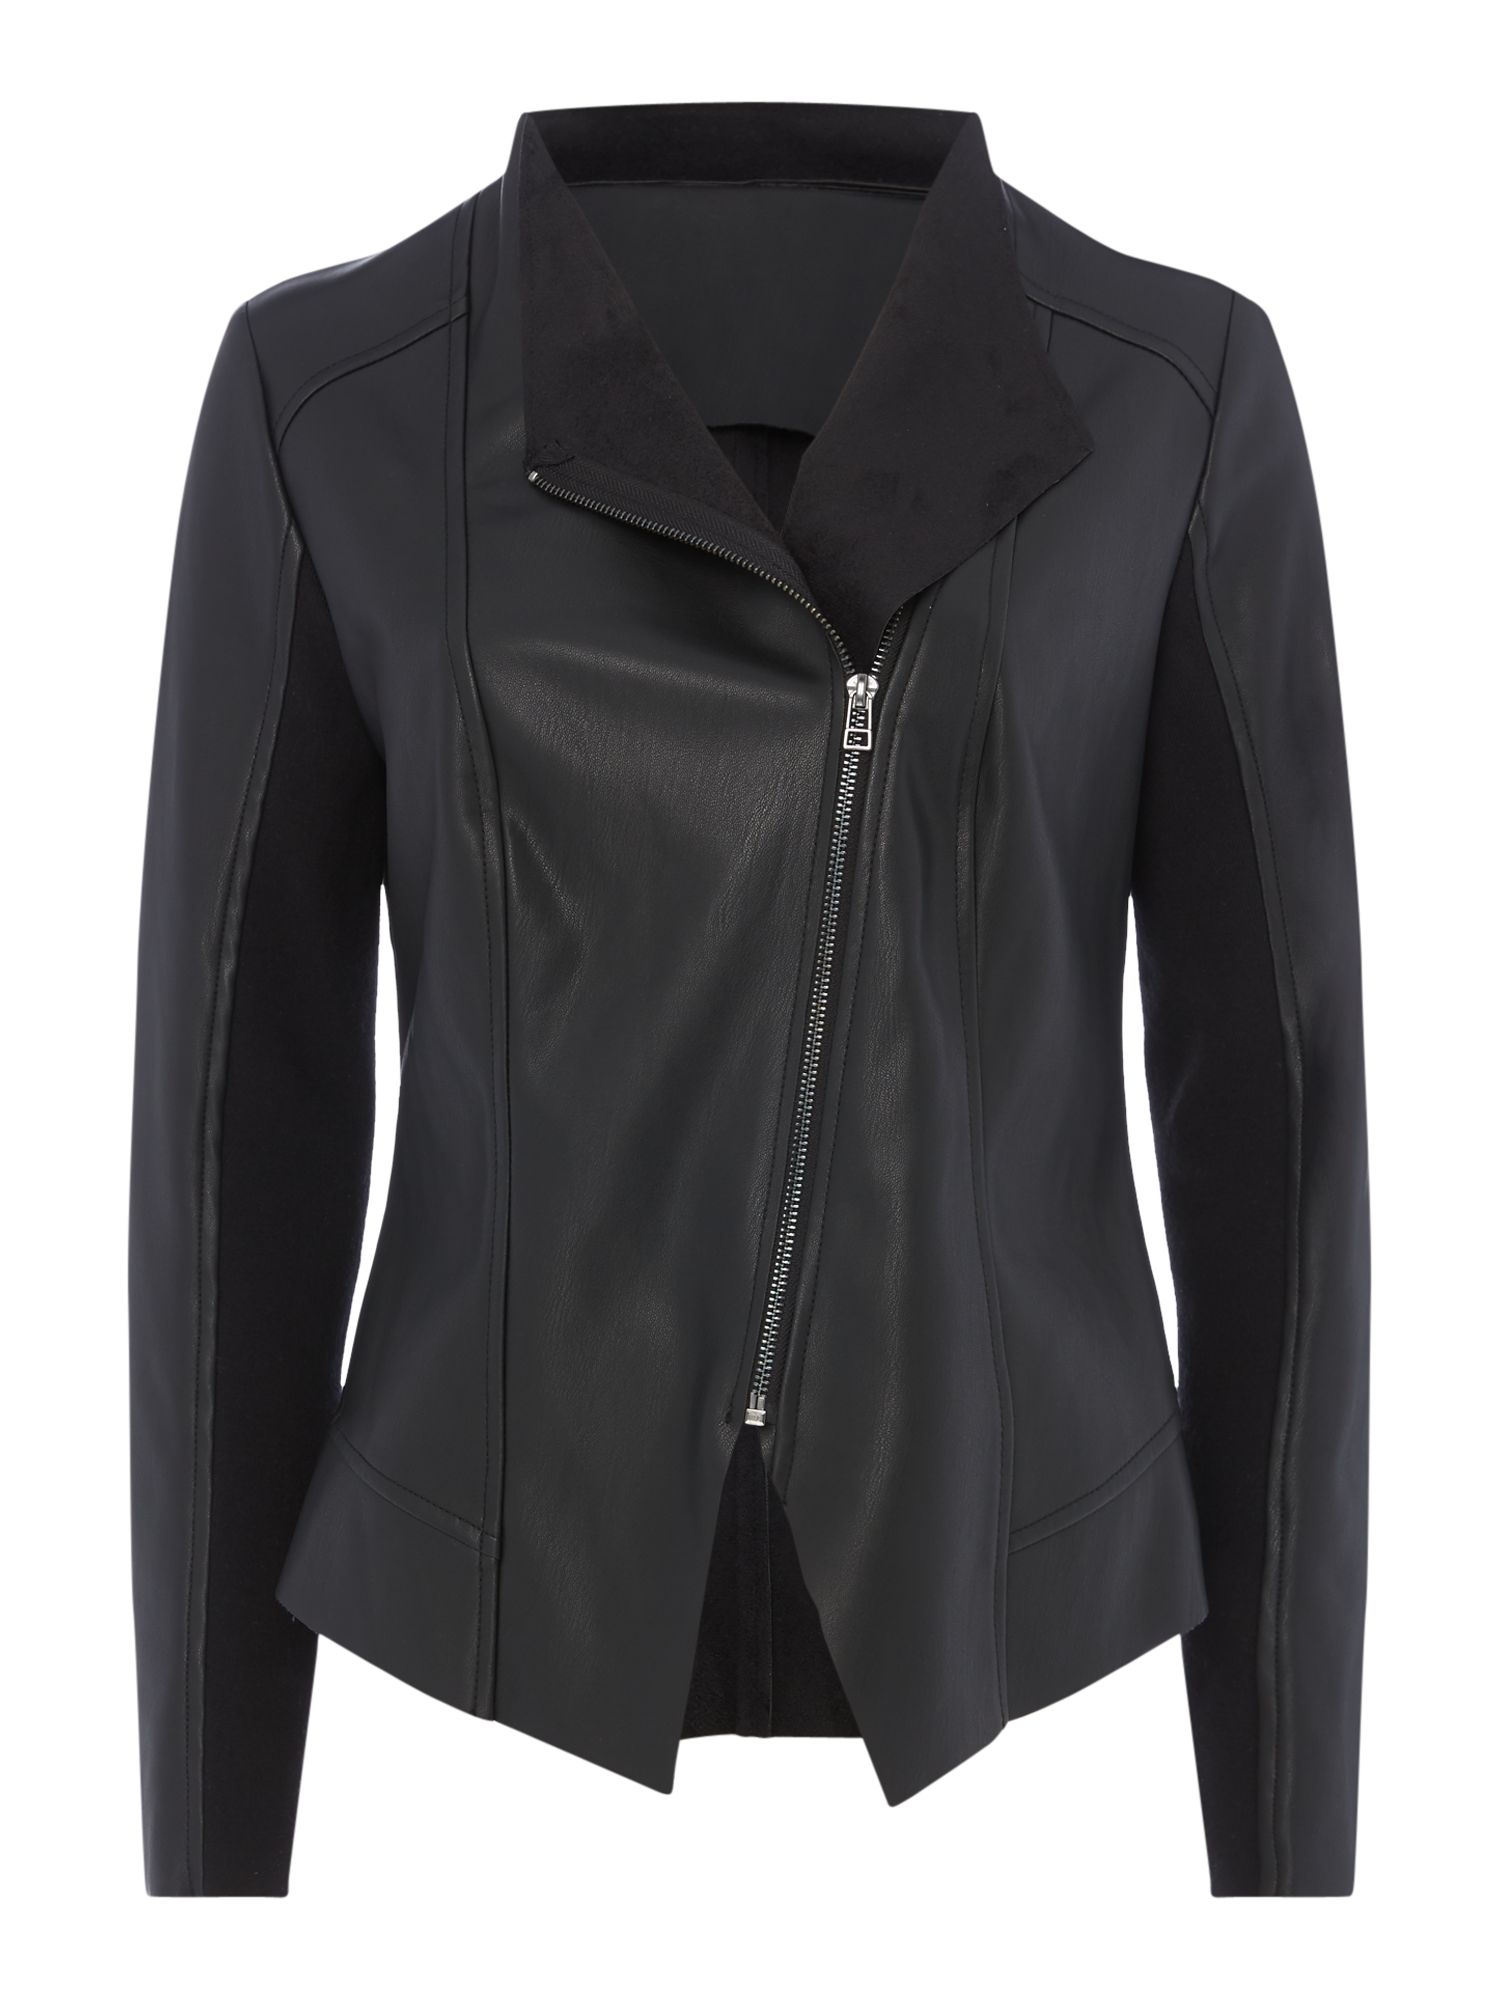 Maison De Nimes Zip faux leather jacket, Black